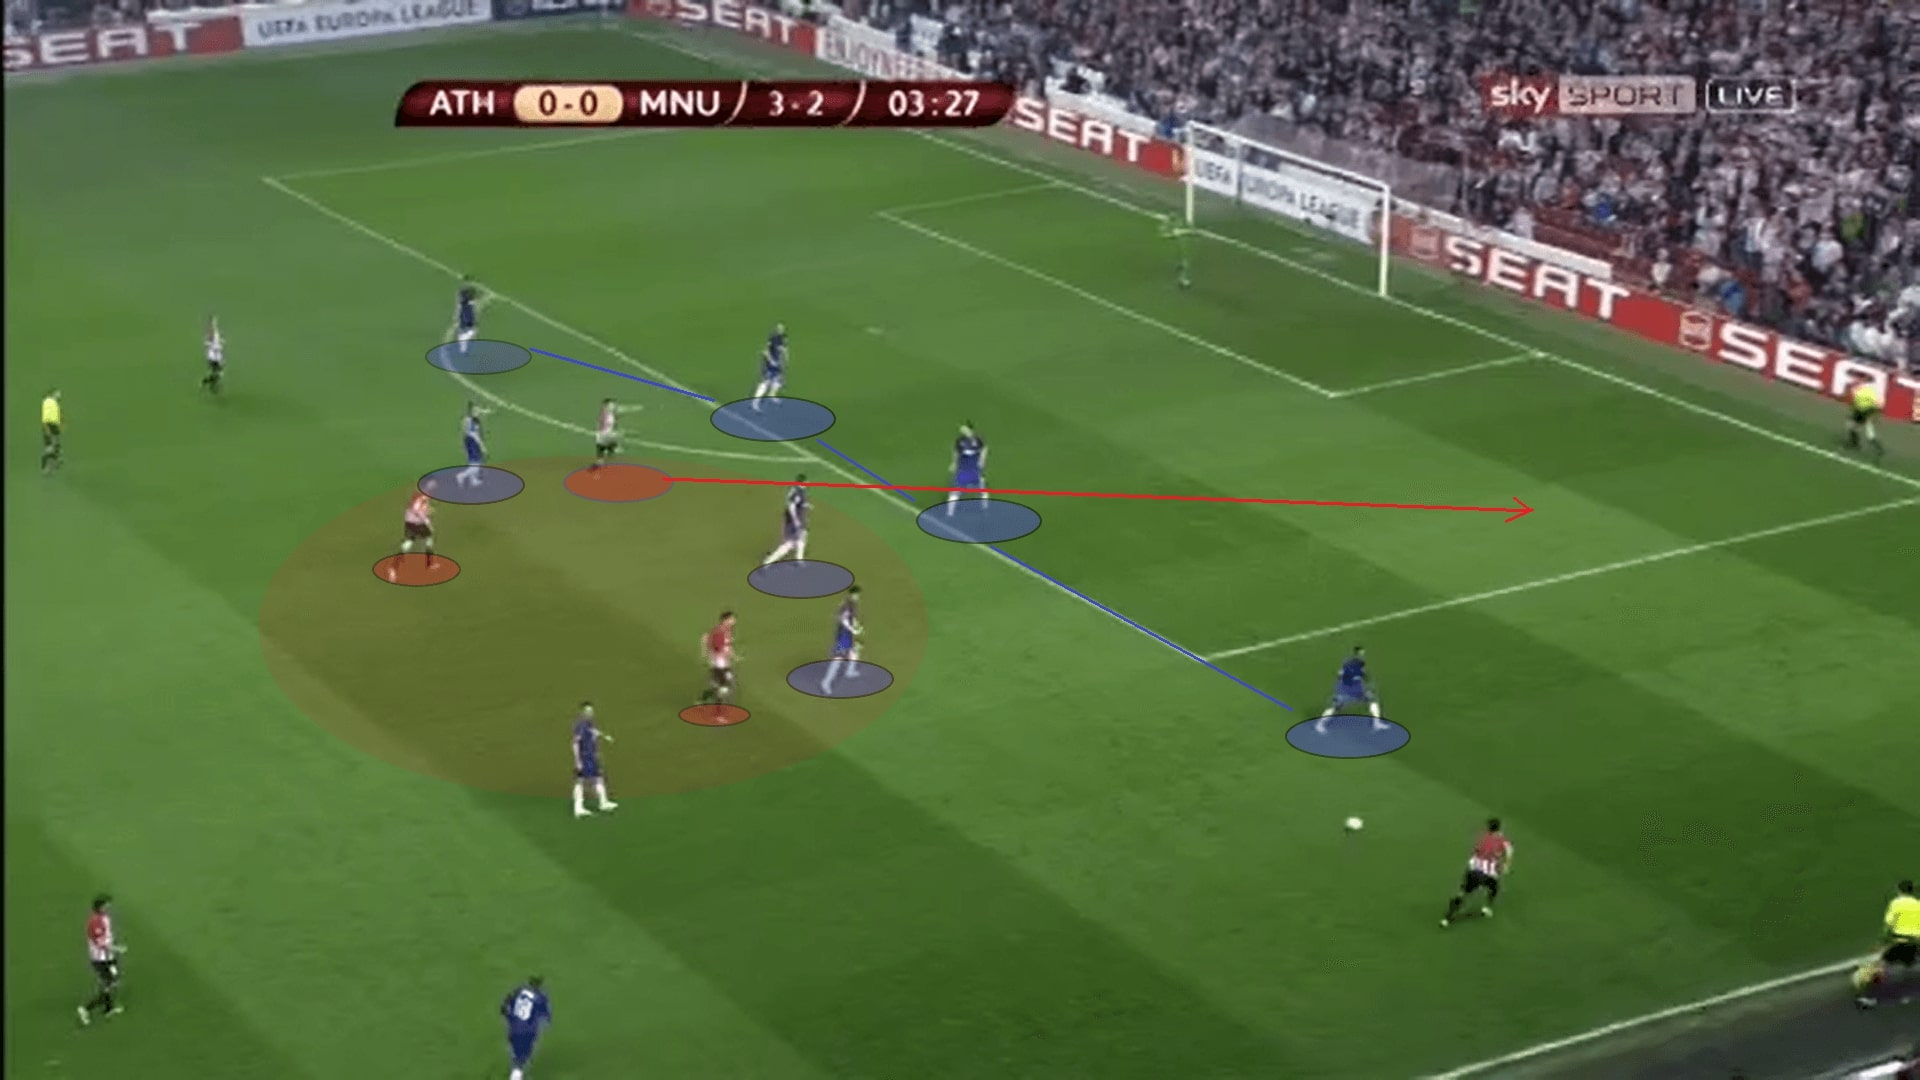 UEFA Europa League 2011/12: Athletic Bilbao vs Manchester United - tactical analysis tactics